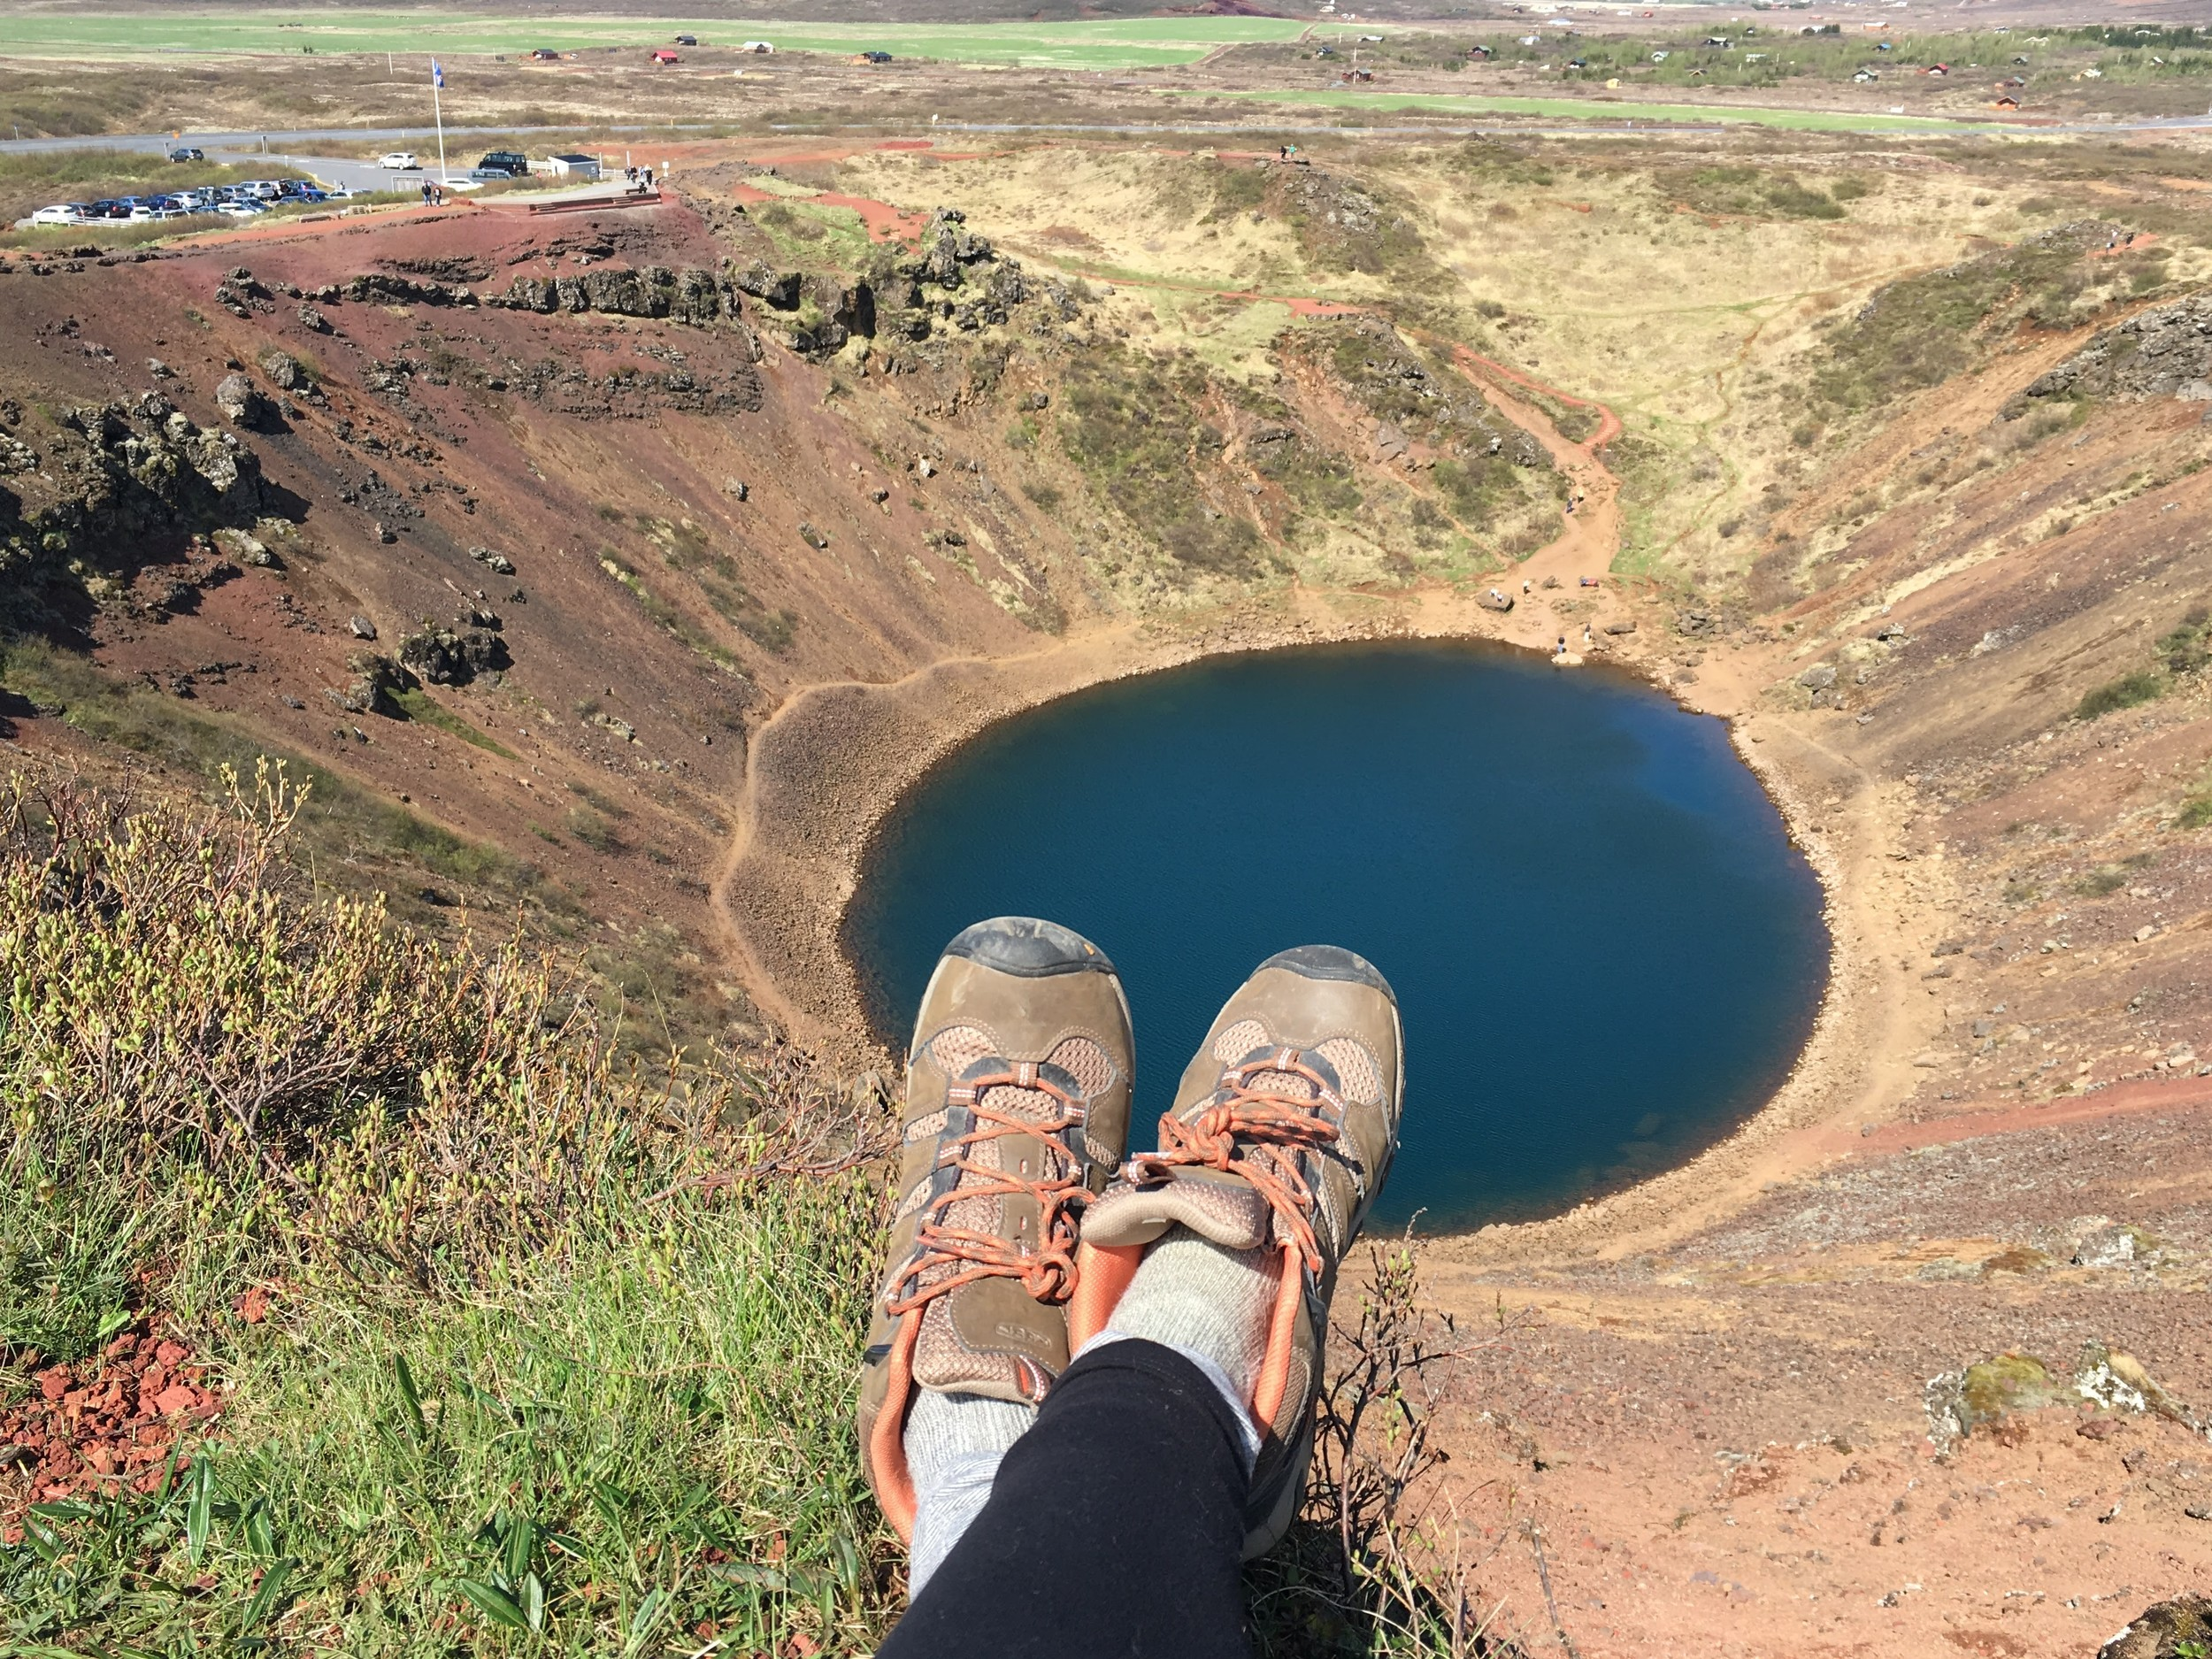 taking a LEISURELY stretch atop the crater, yes it was scary!